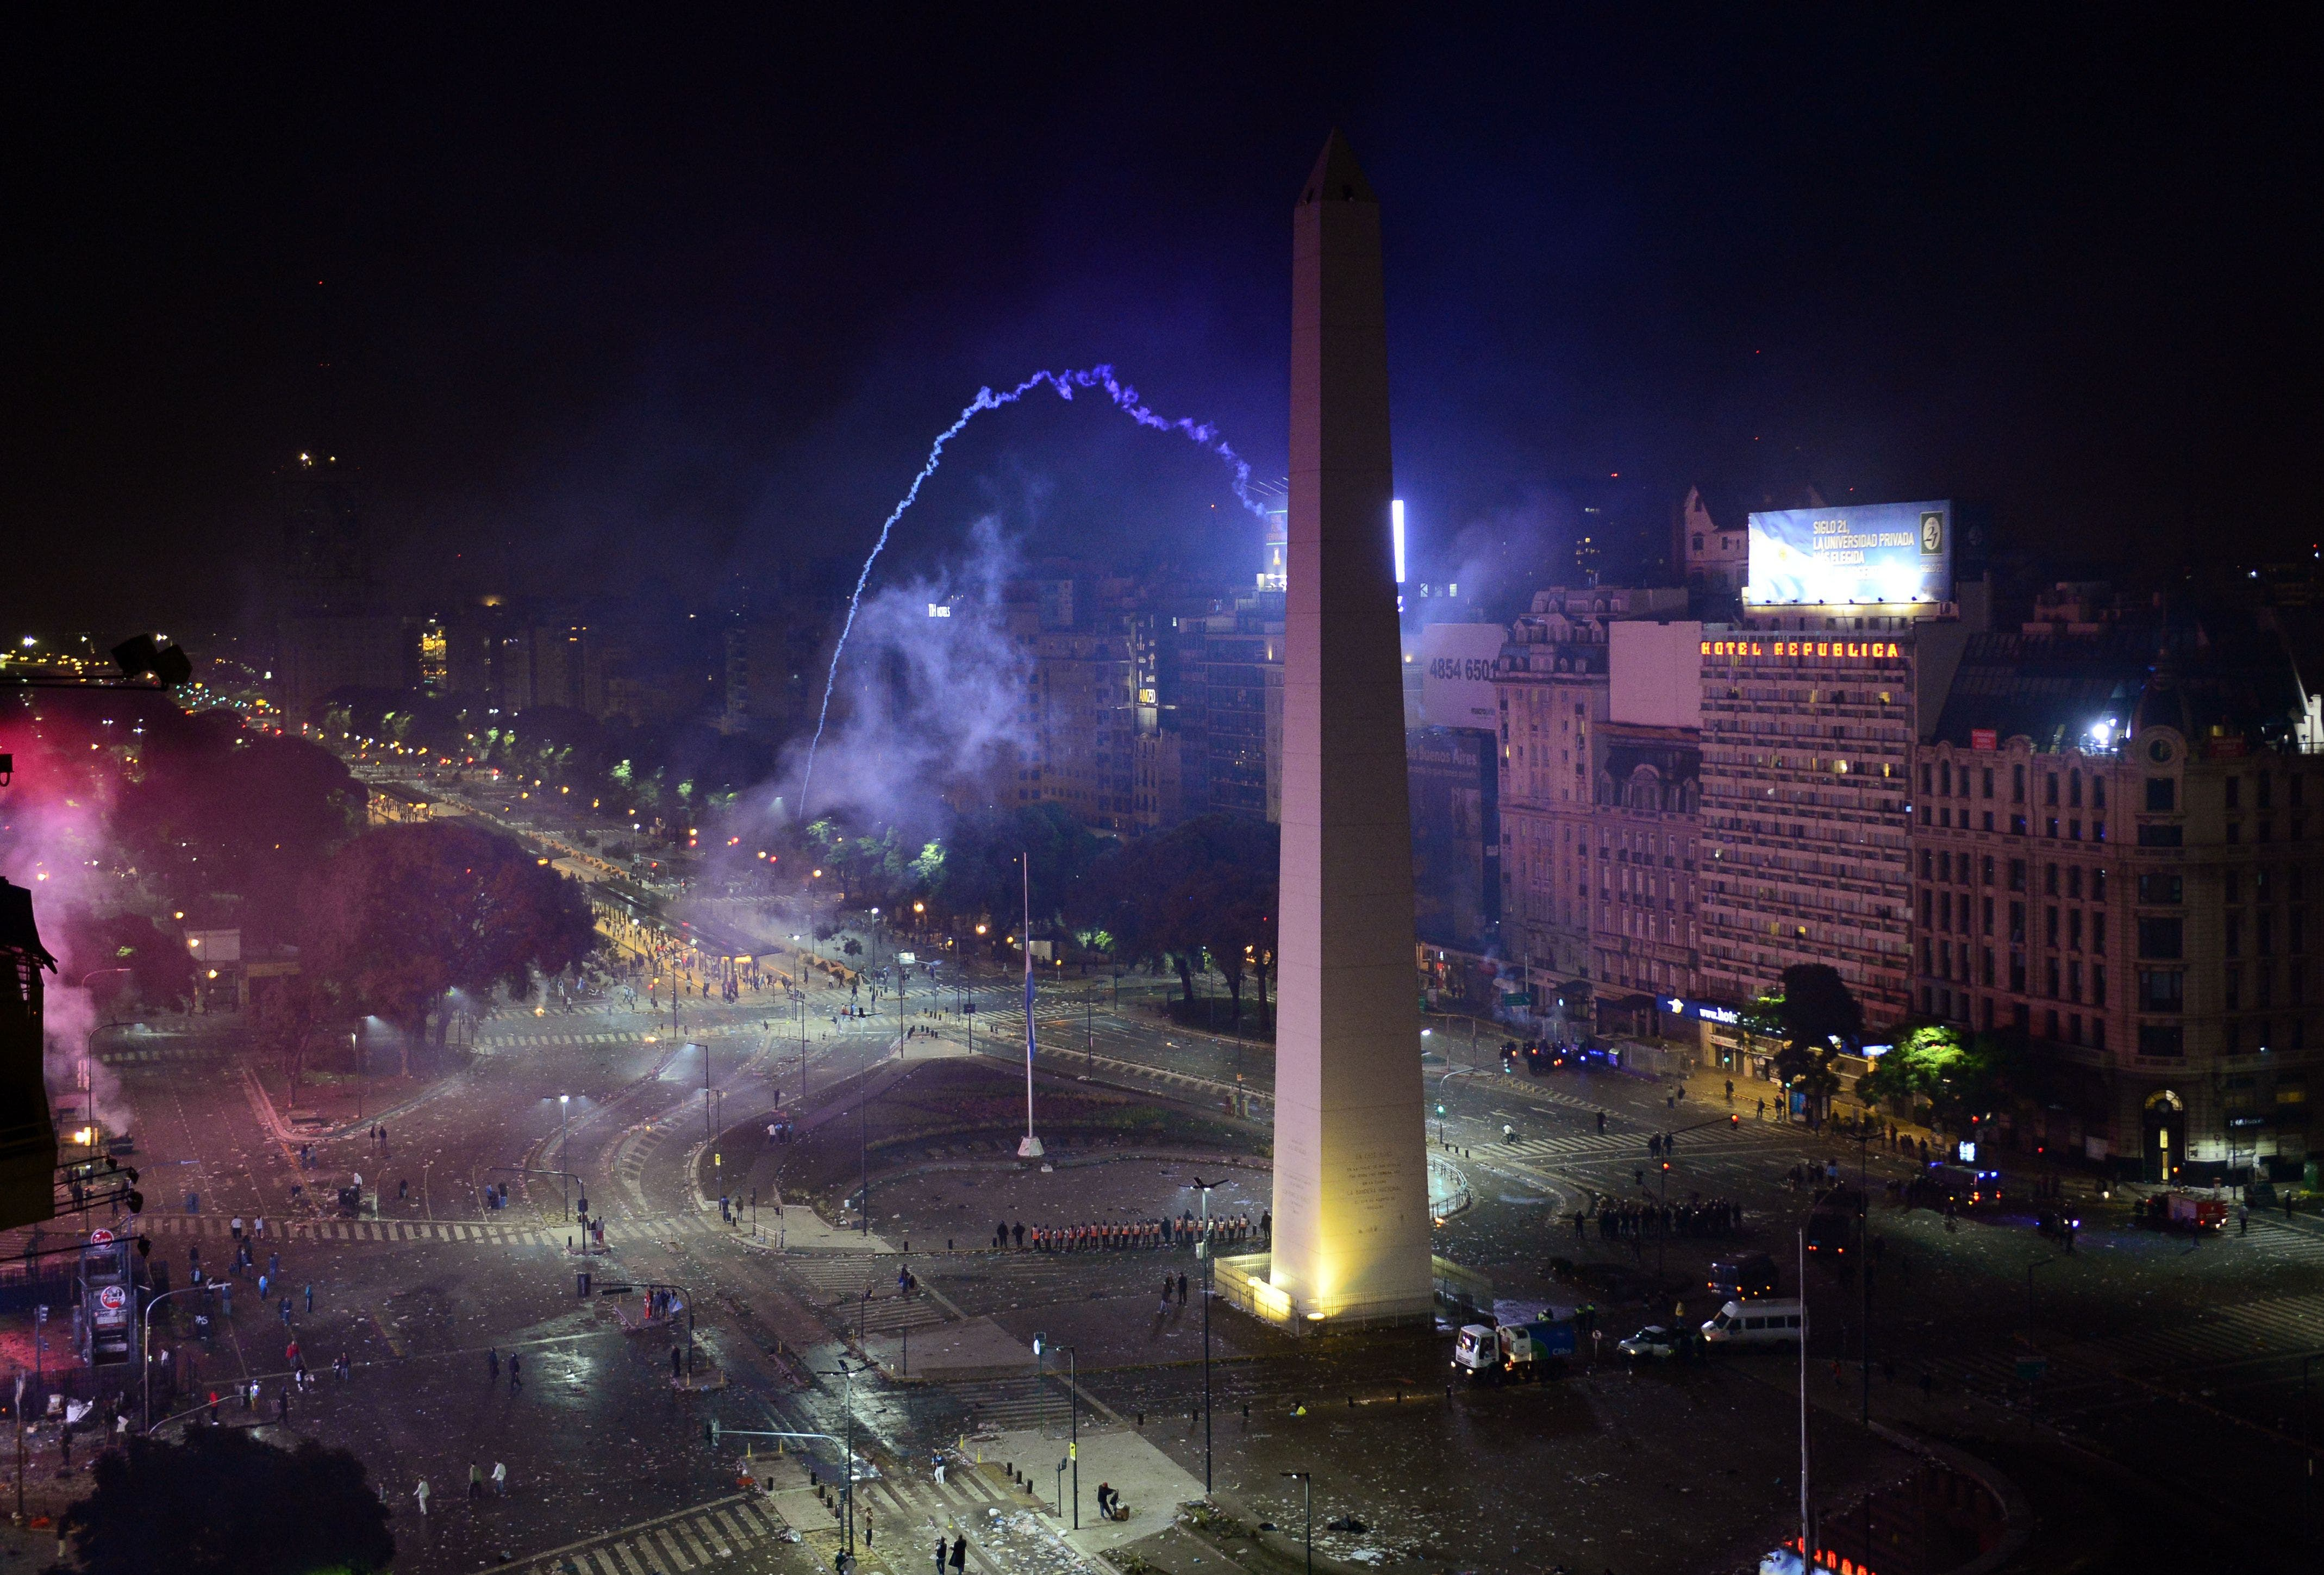 ear gas falls on 9 de Julio Avenue during disturbances following celebrations for the performance of the national team in the FIFA World Cup Brazil 2014 final at the Obelisk in Buenos Aires on July 13, 2014. (AFP)